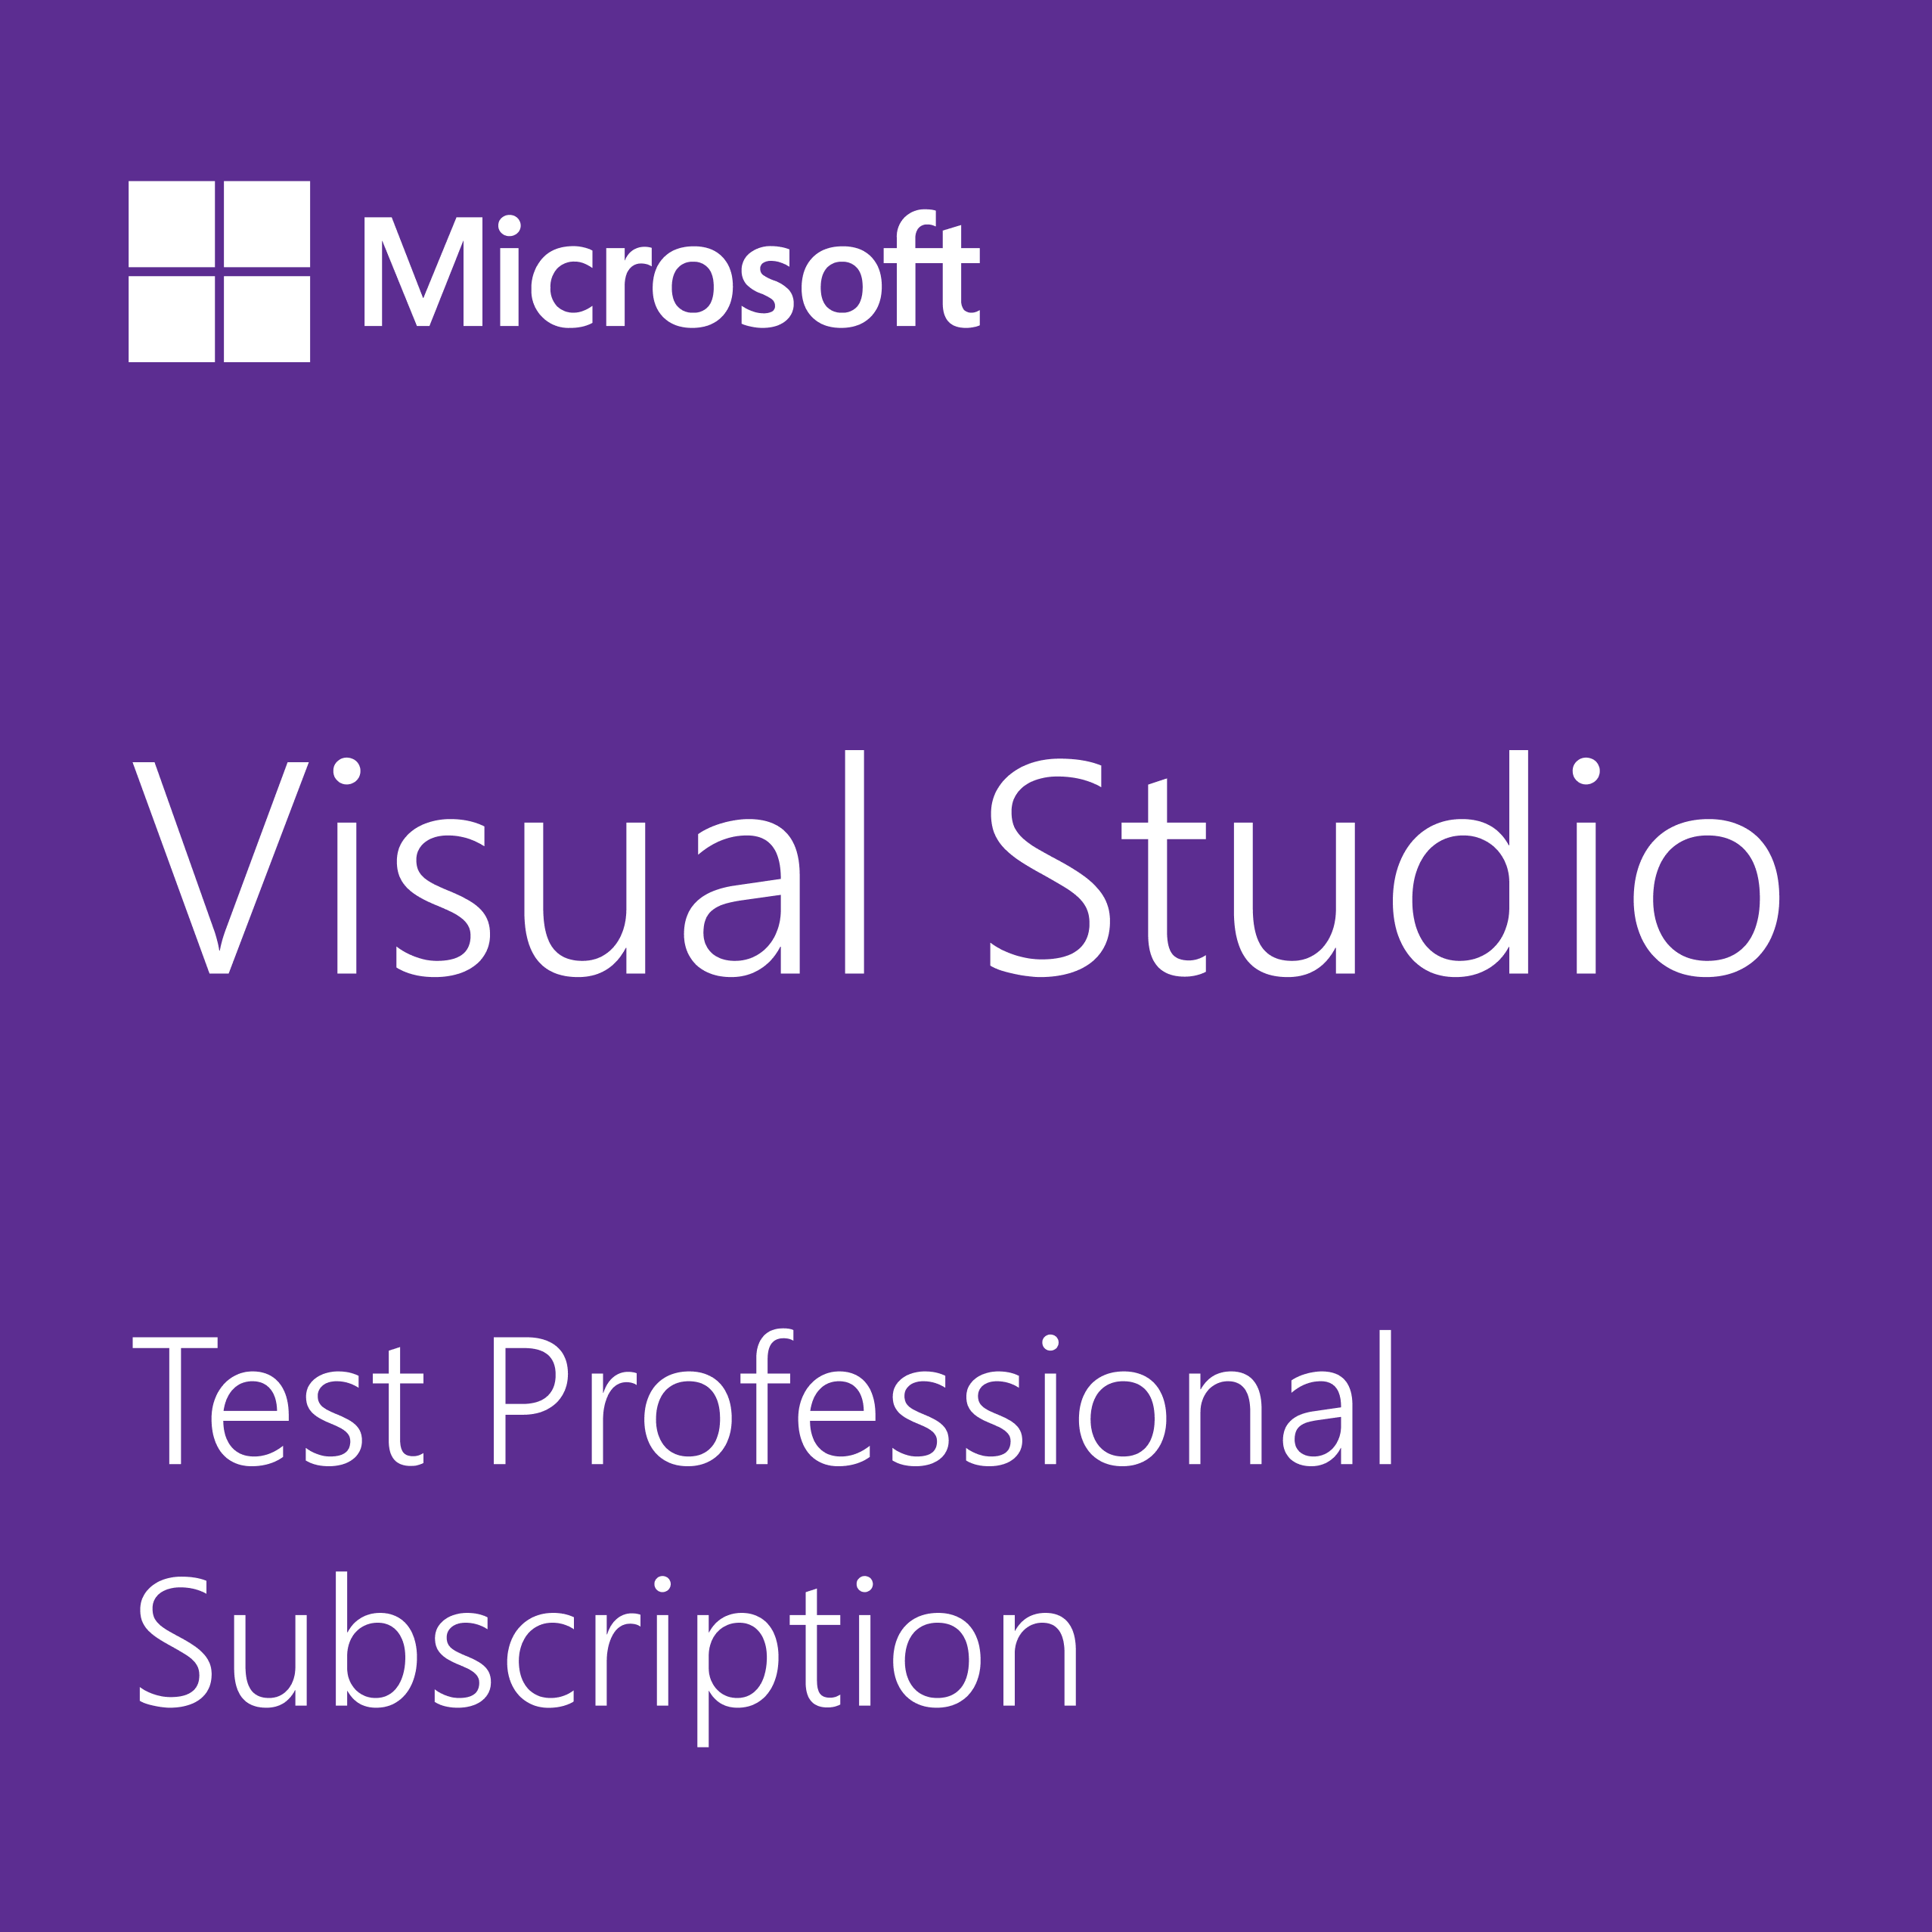 Buy Visual Studio Test Professional Subscription - Microsoft Store